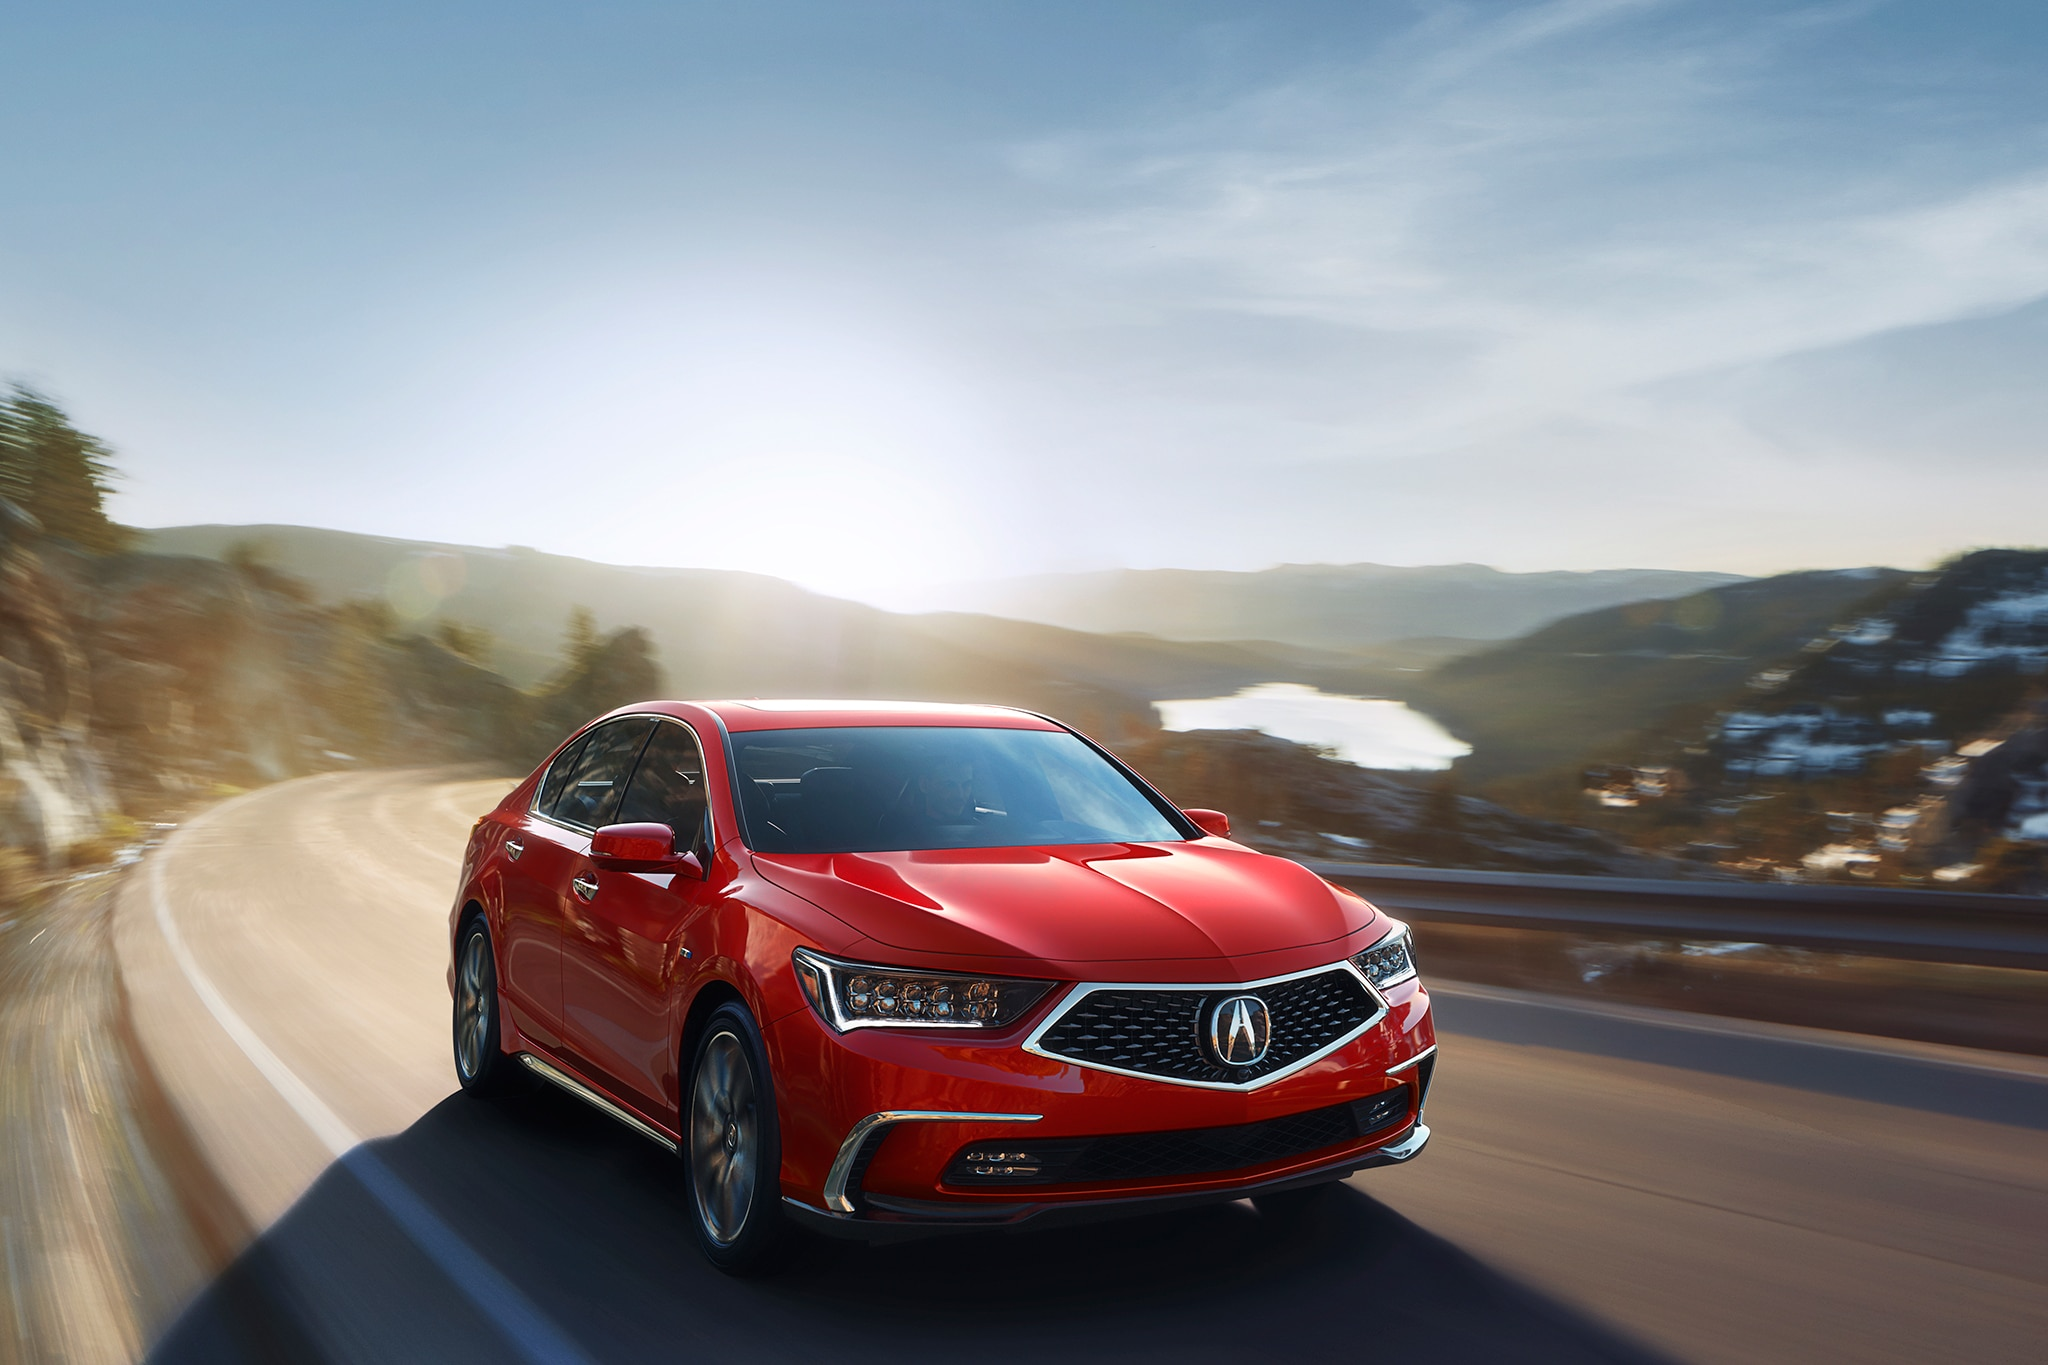 Acura RLX Arrives with New Diamond Pentagon Grille""